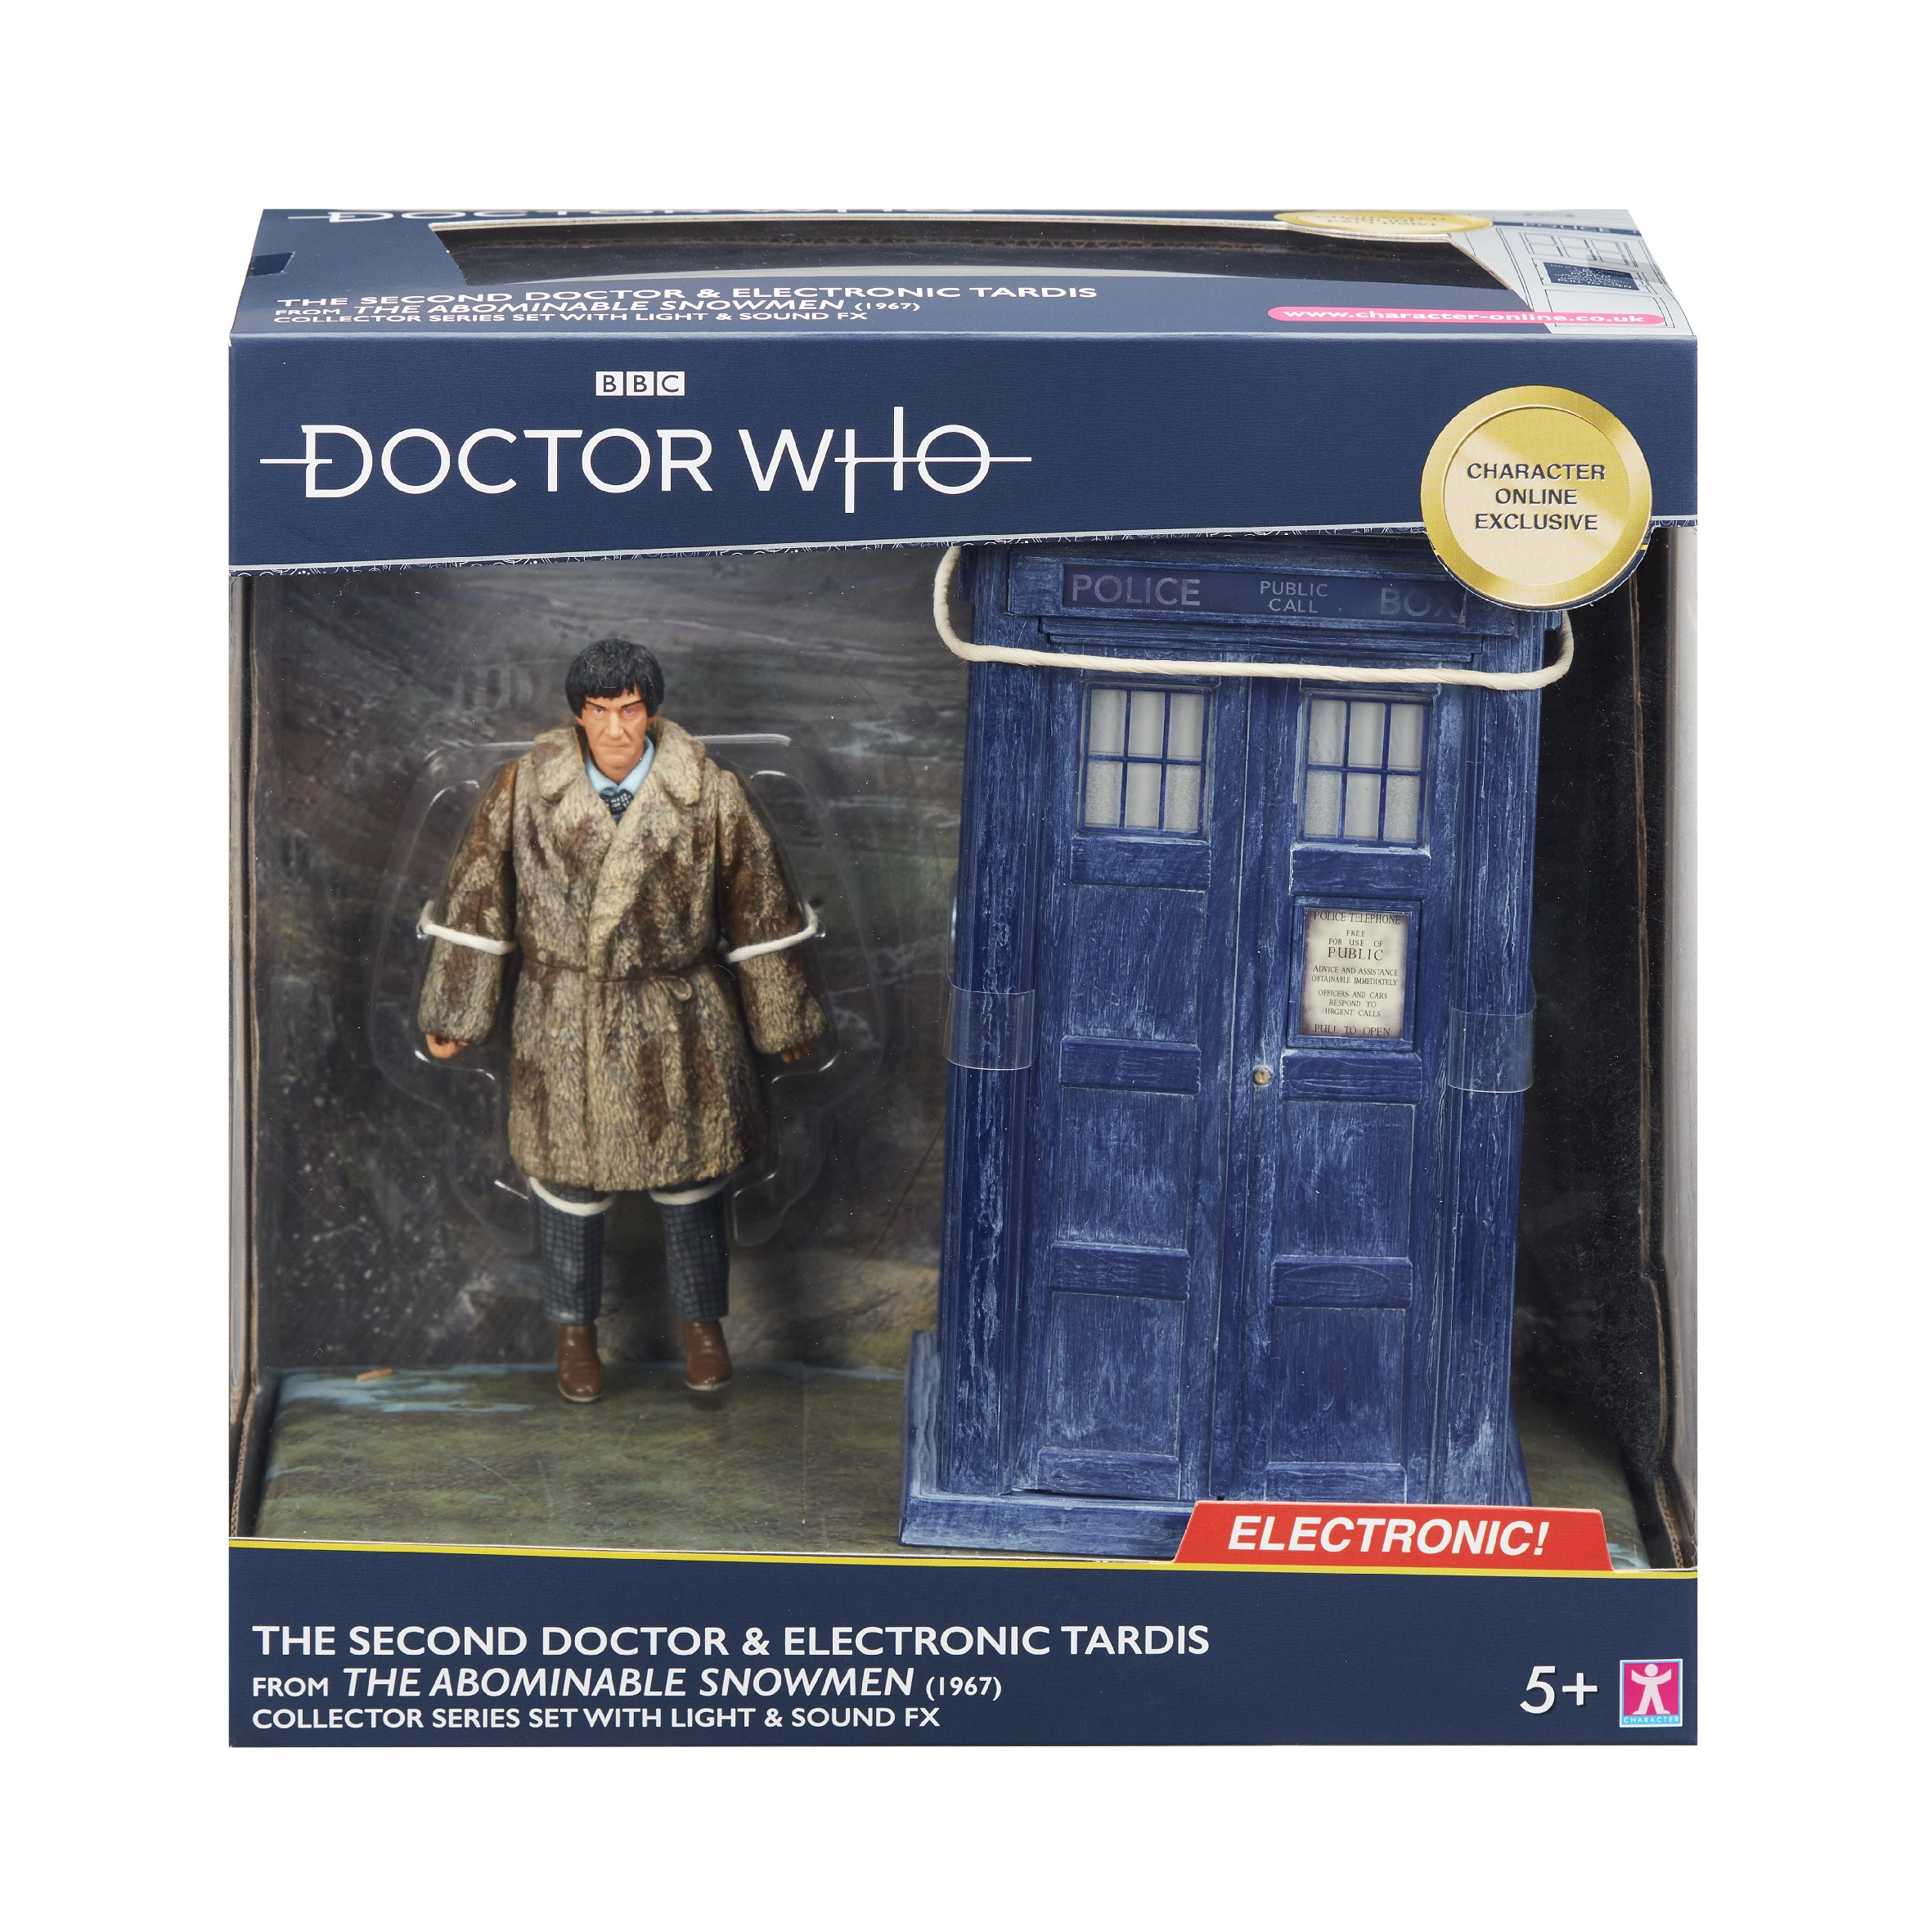 Doctor Who - the second doctor Character Otpions